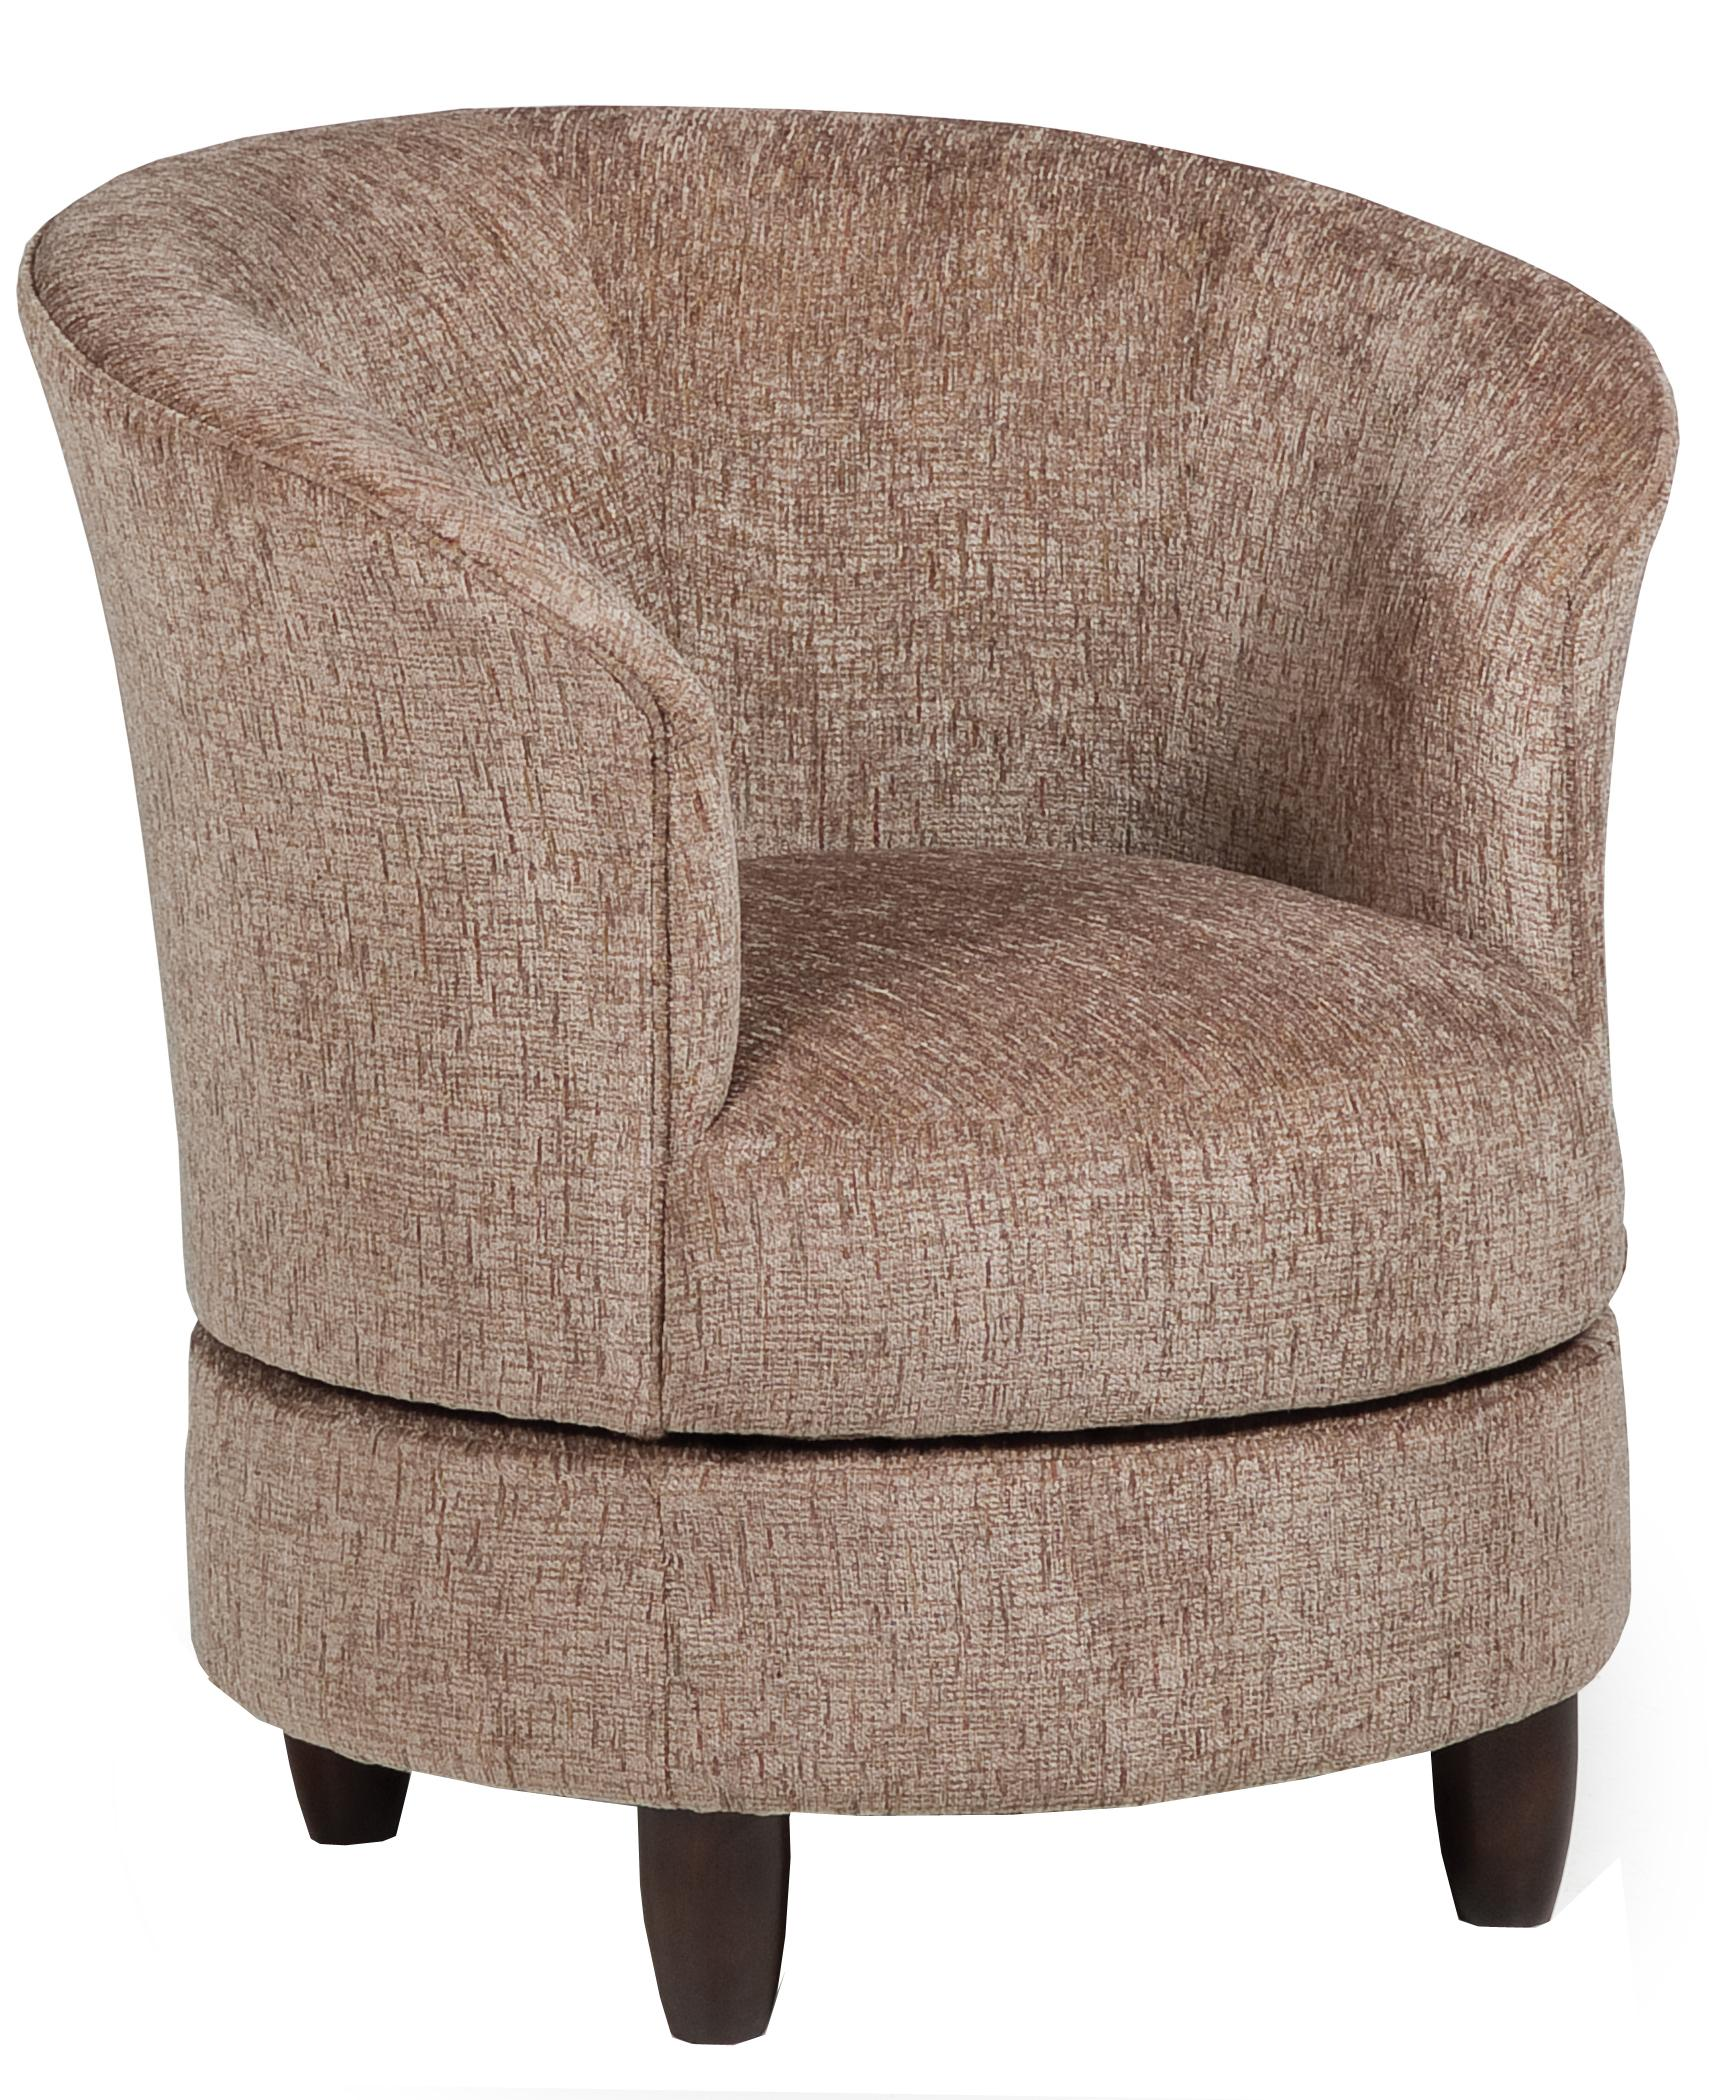 Barrell Chair Best Home Furnishings Accent Chairs Swivel Barrel Chair